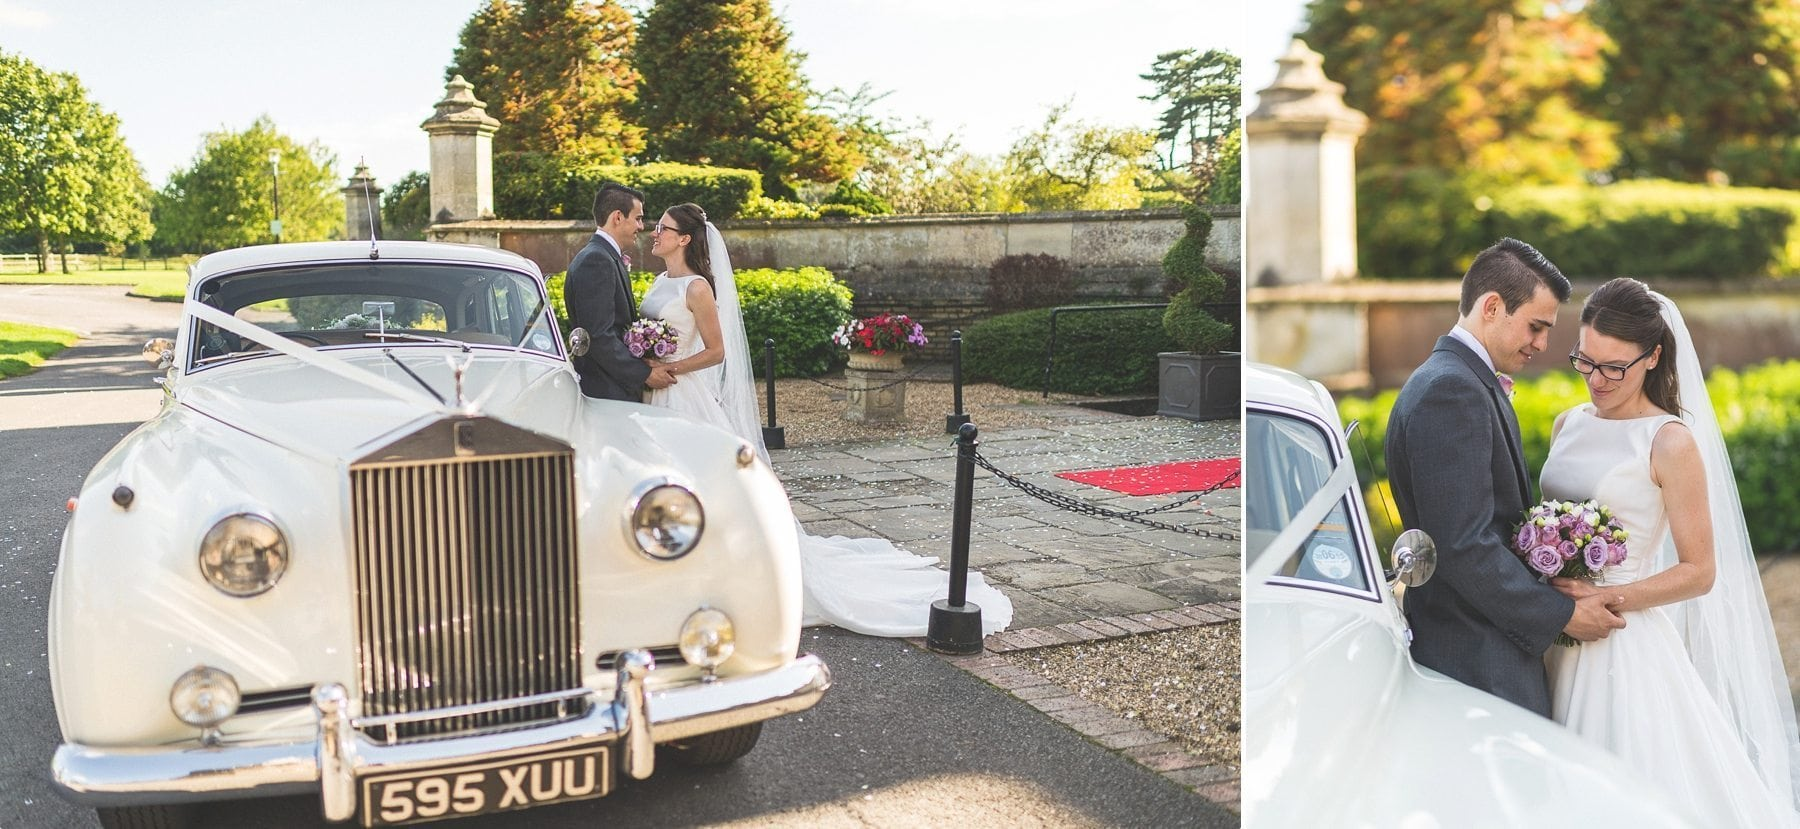 Bride and groom hugging by their vintage wedding car at Horsley Park